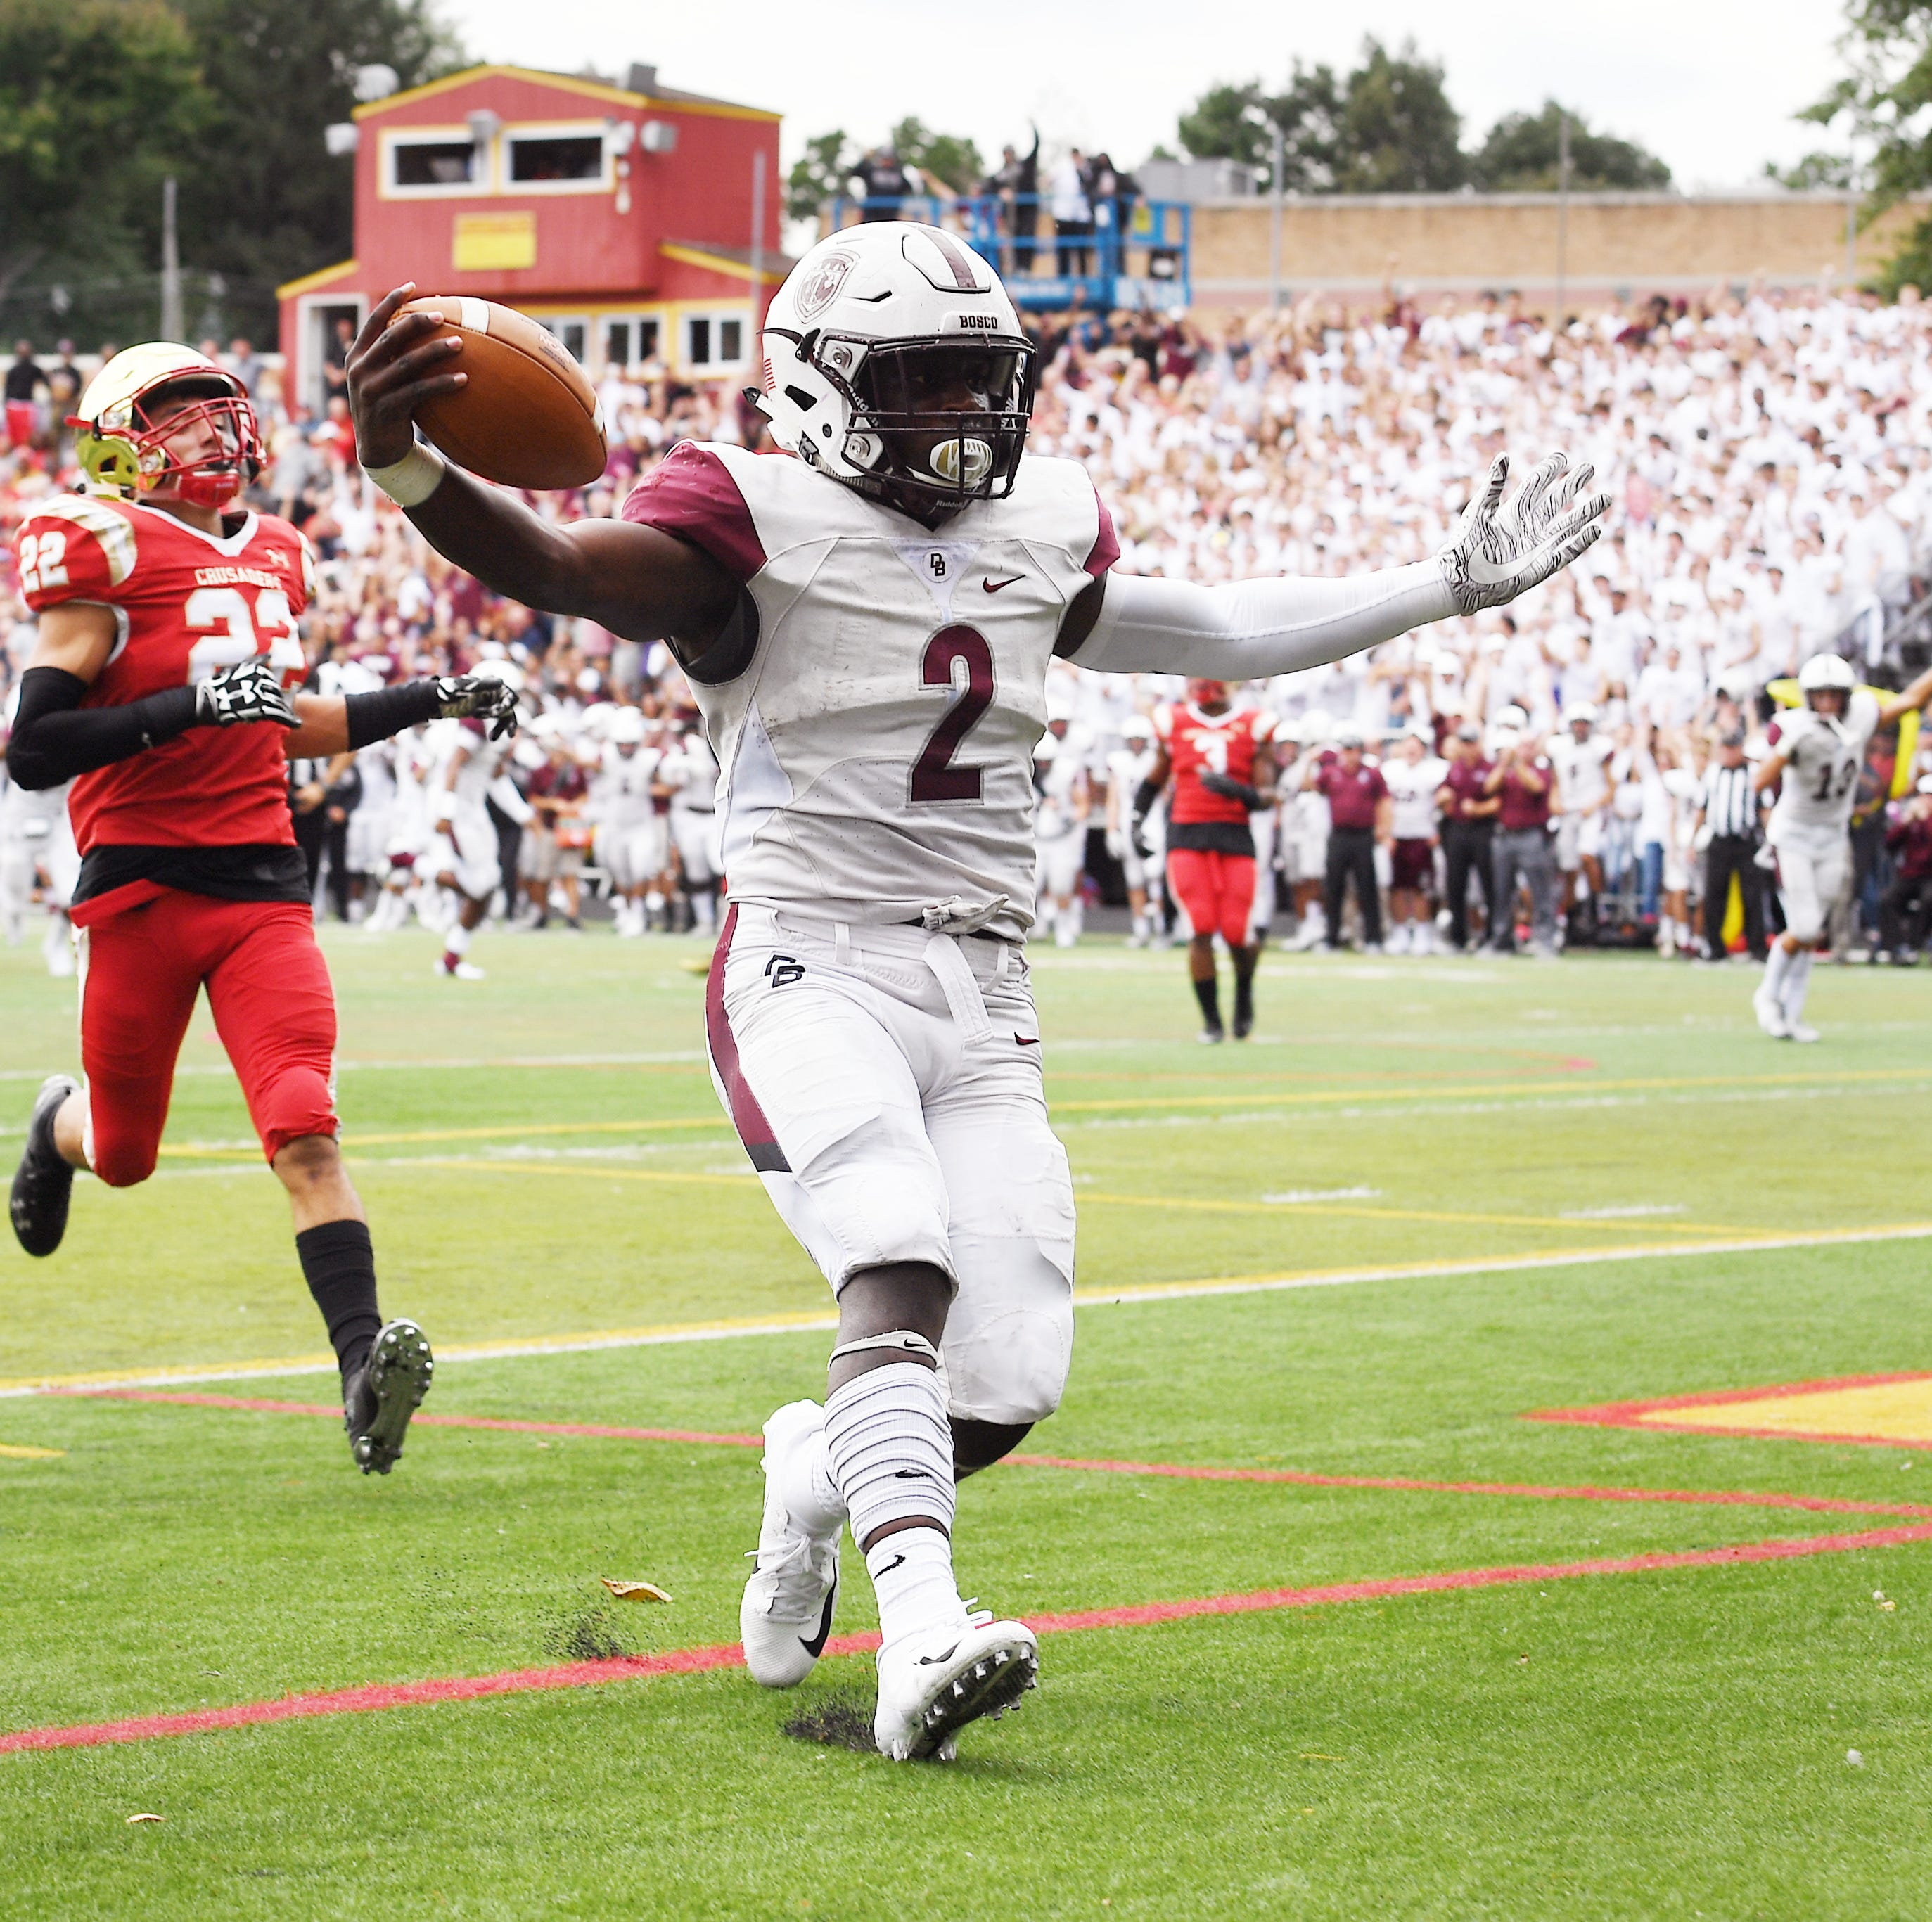 Don Bosco football upsets No. 2 DePaul behind big game by Kyle Monangai